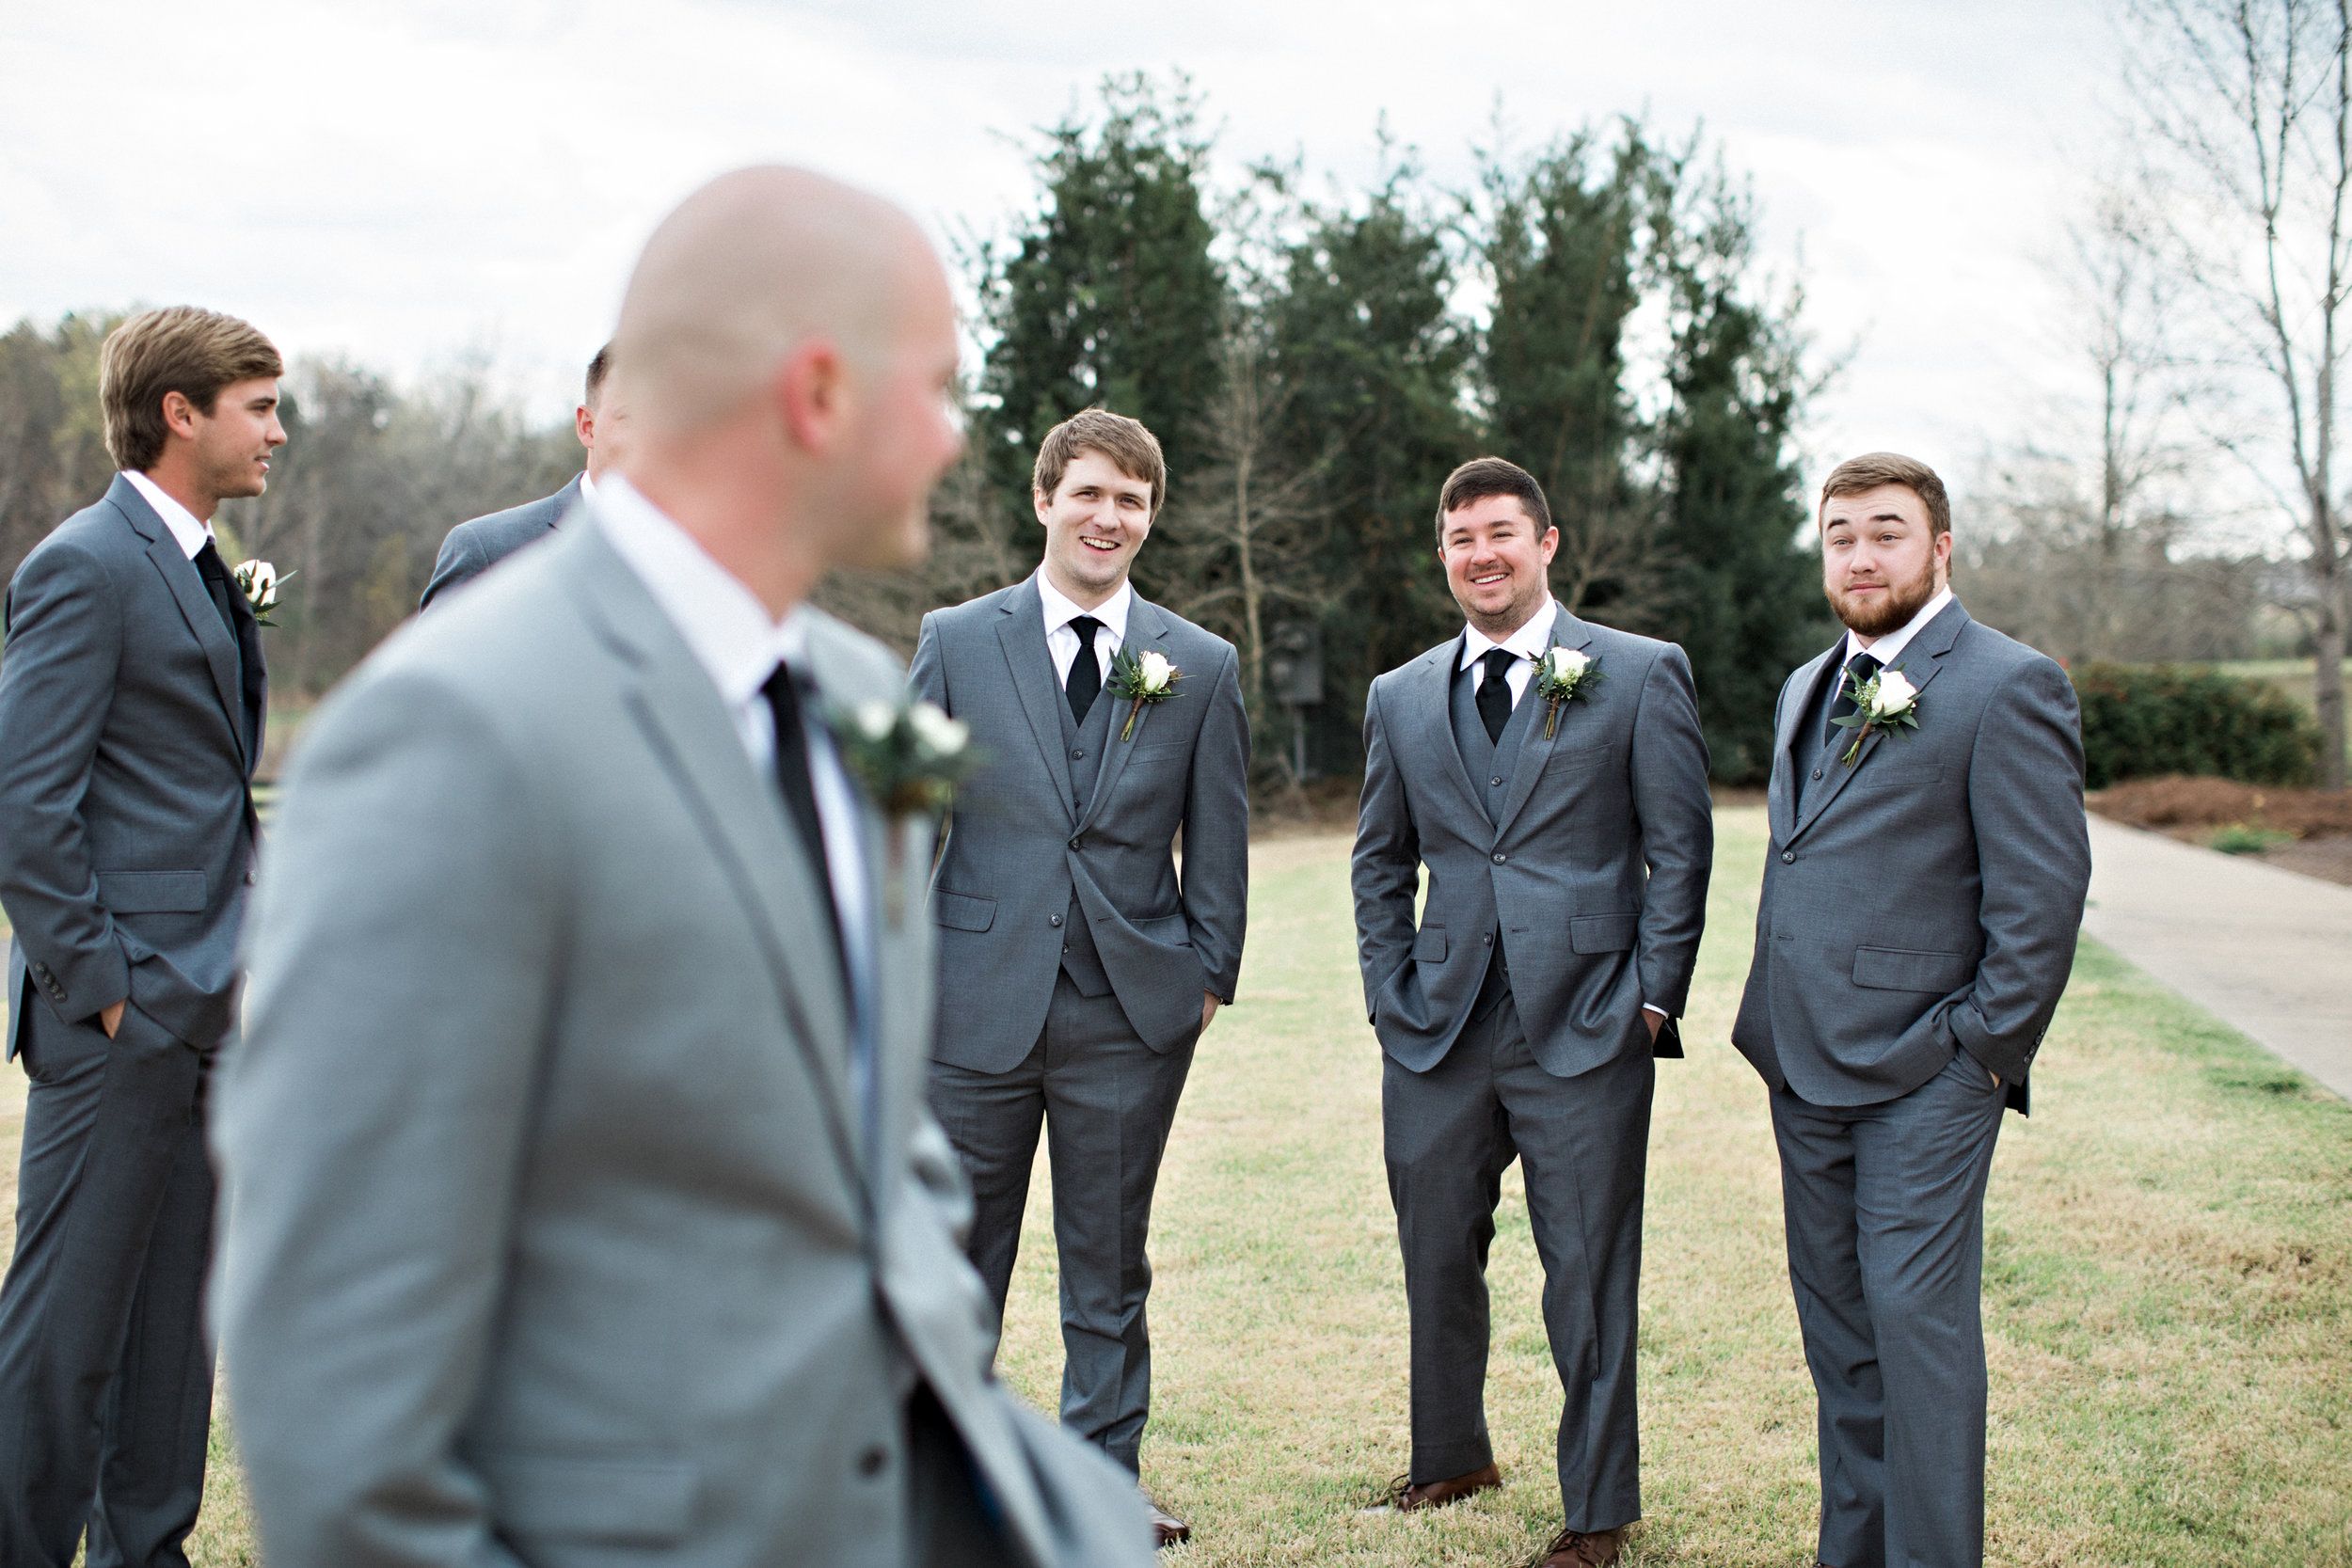 Montgomery-Alabama-Wedding-Photographers-The-Waters-Nick-Drollette-121.jpg